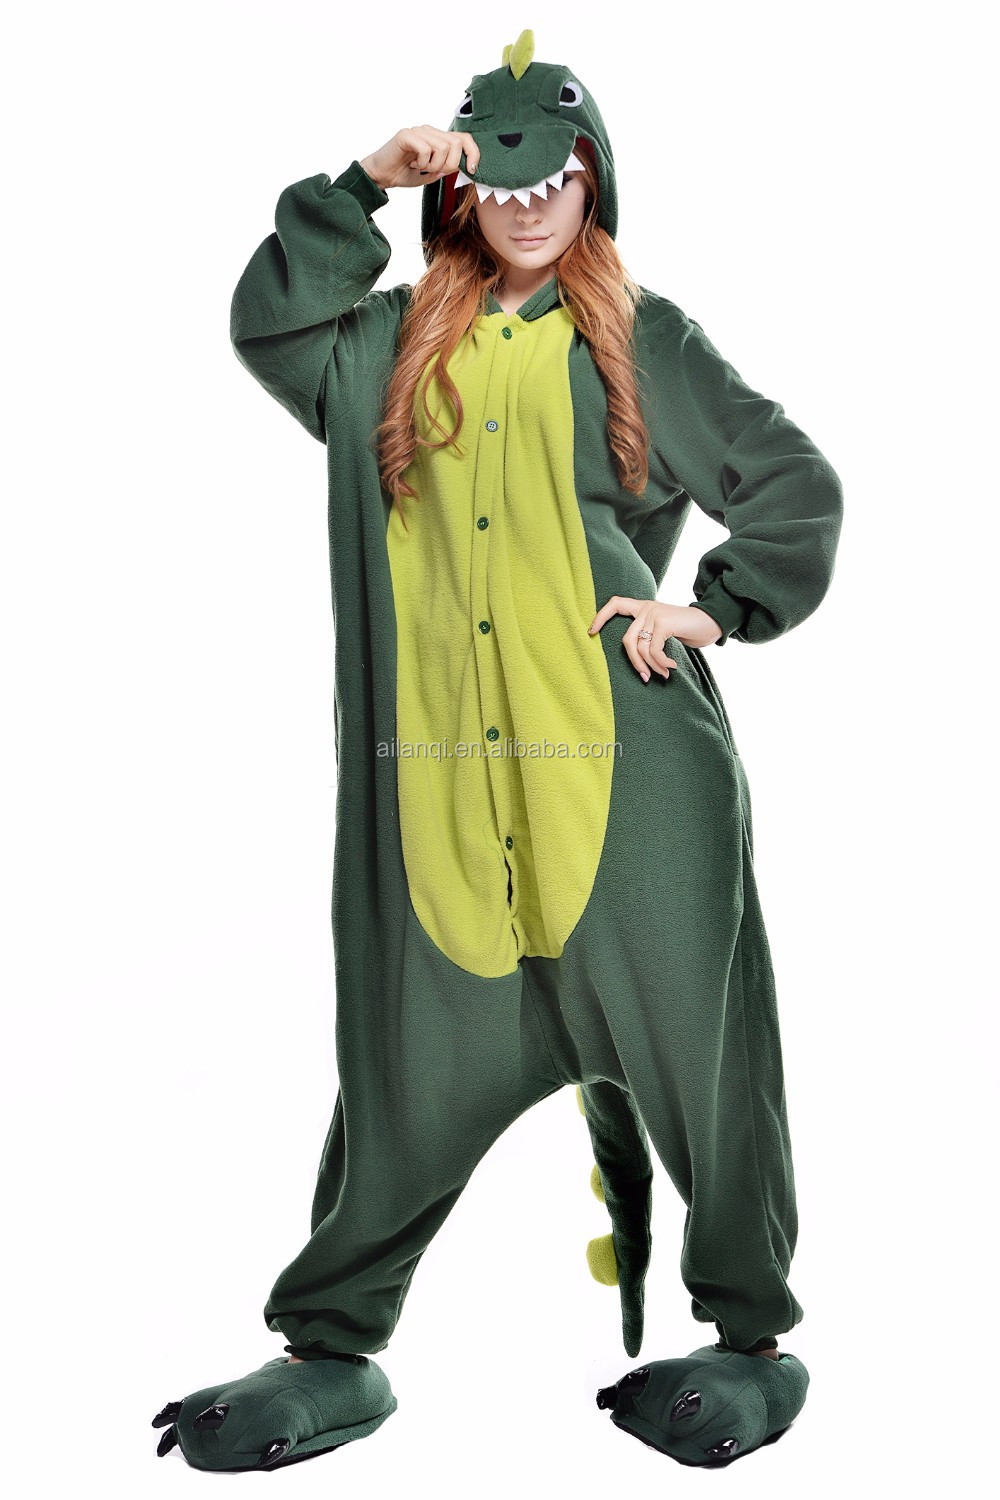 Wholesale Polar Fleece cosplay Animal Costume for Adults